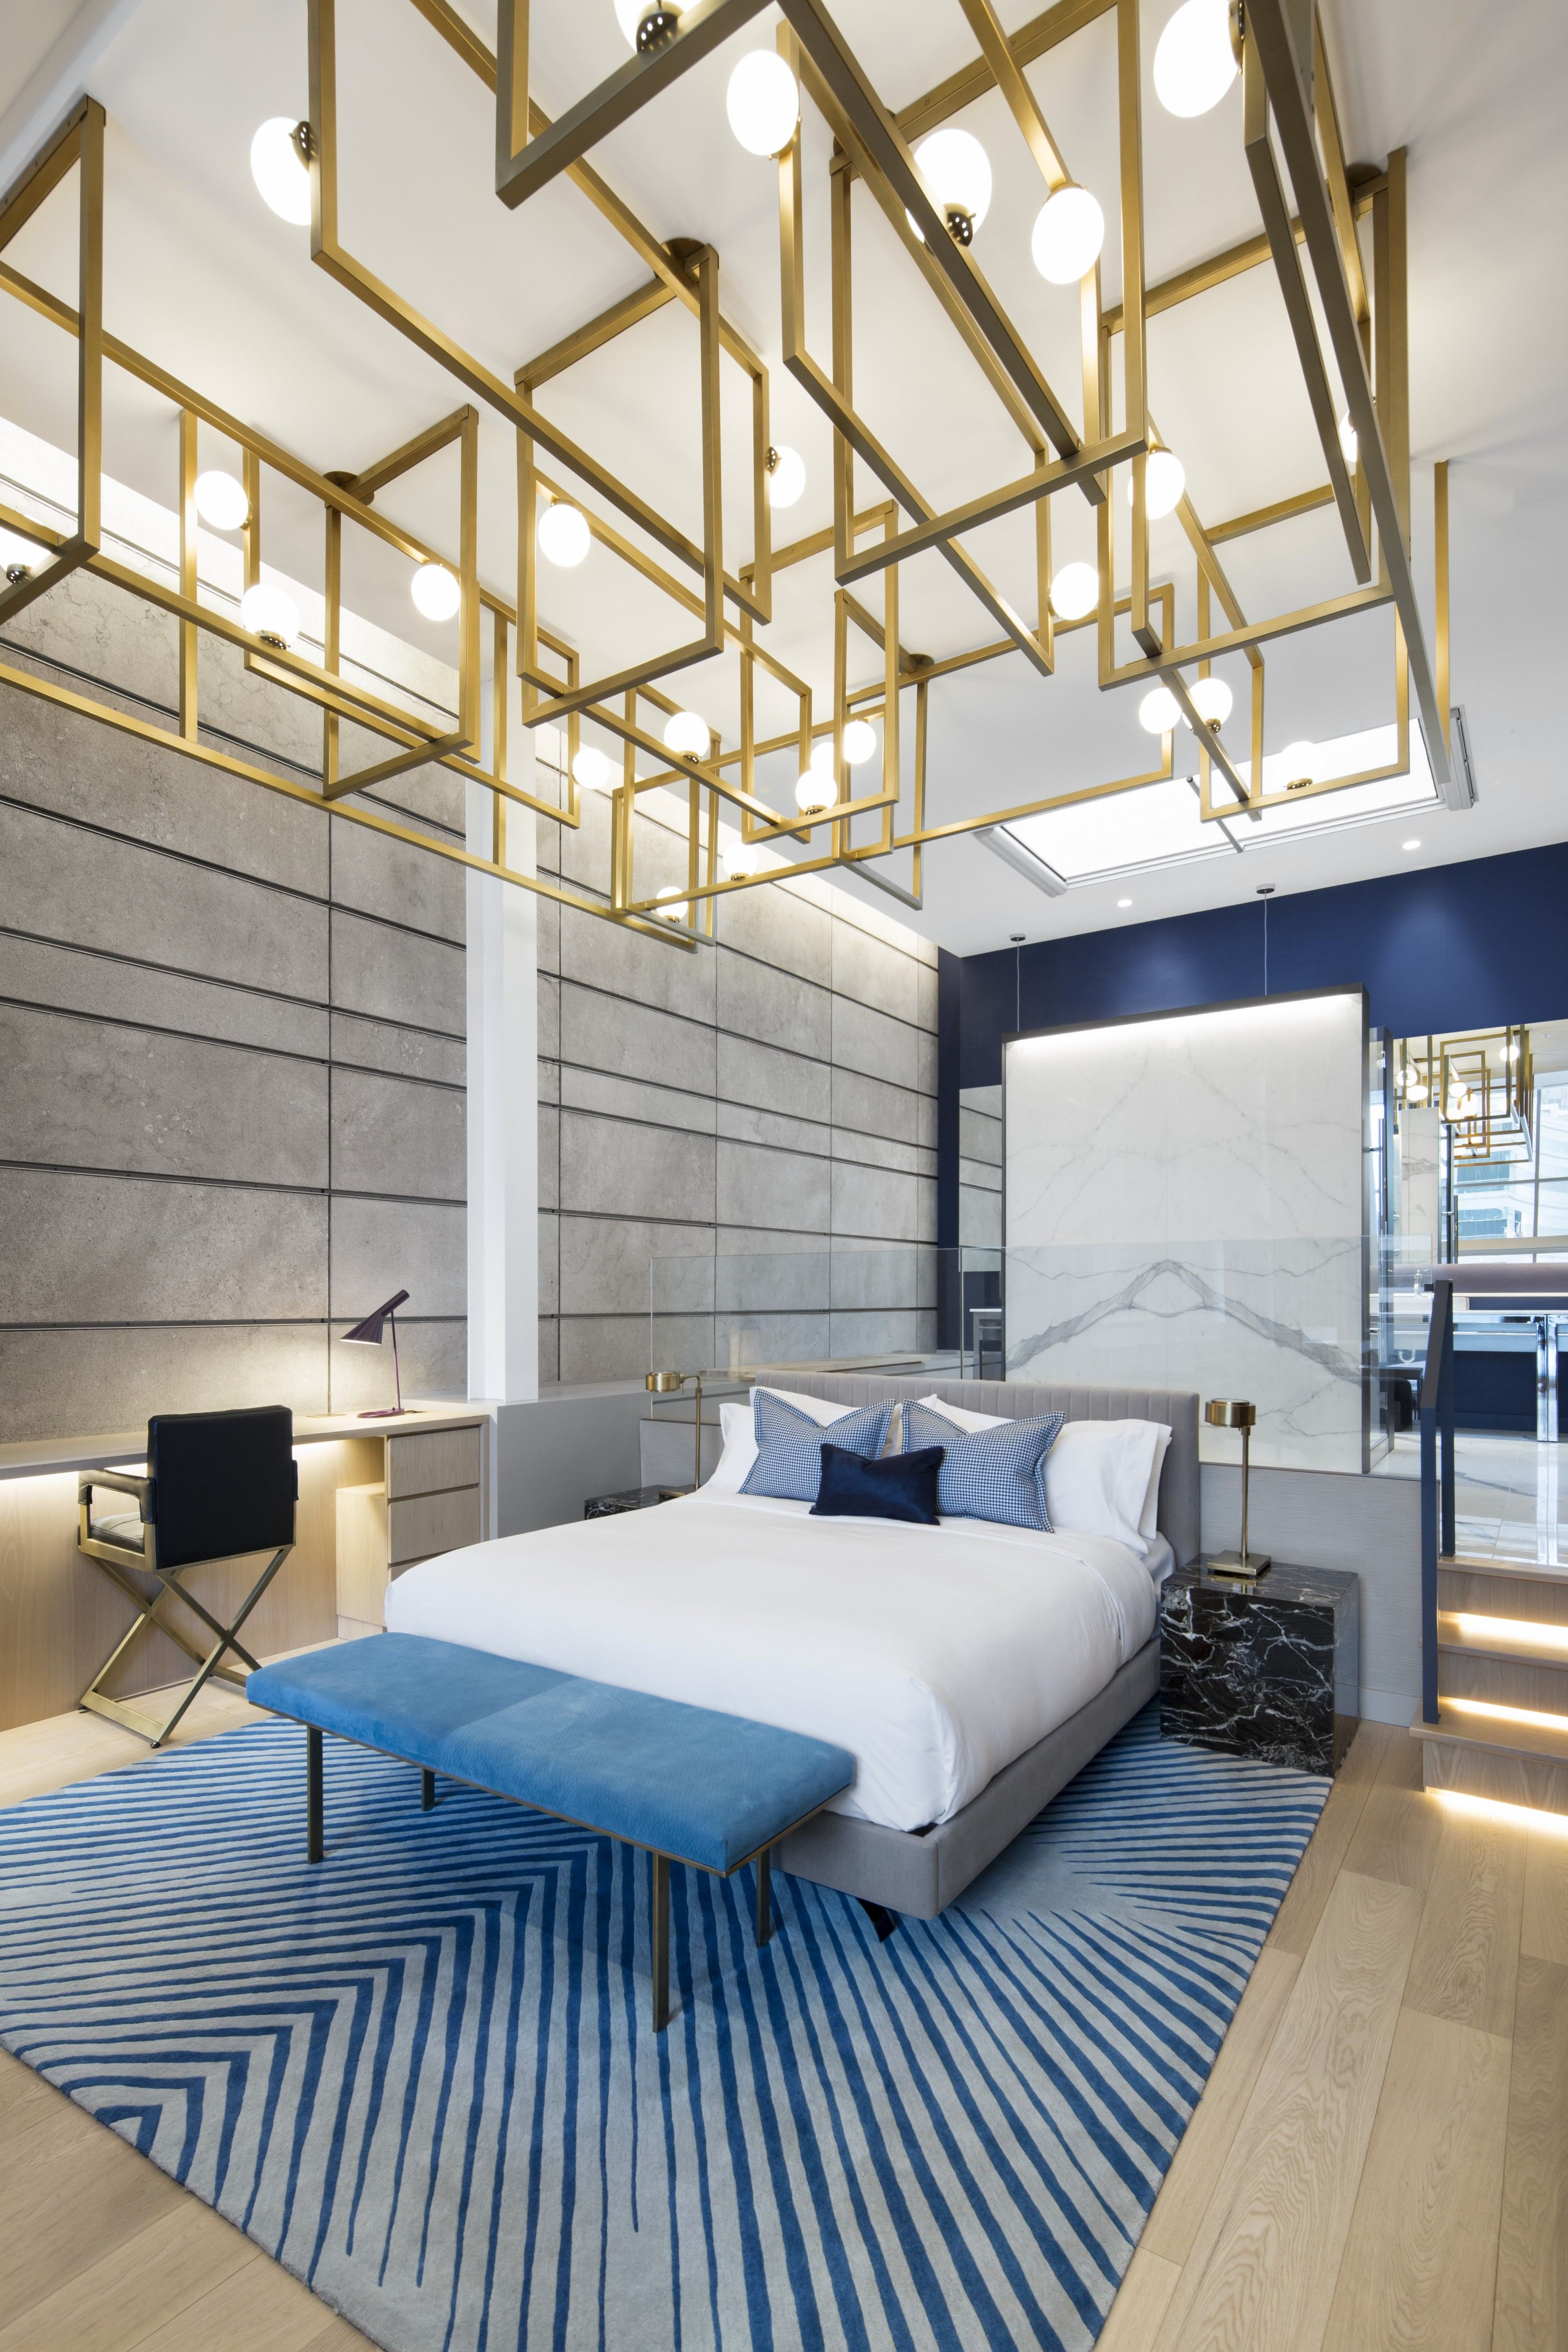 Designed by Sid Lee Architecture the WOW